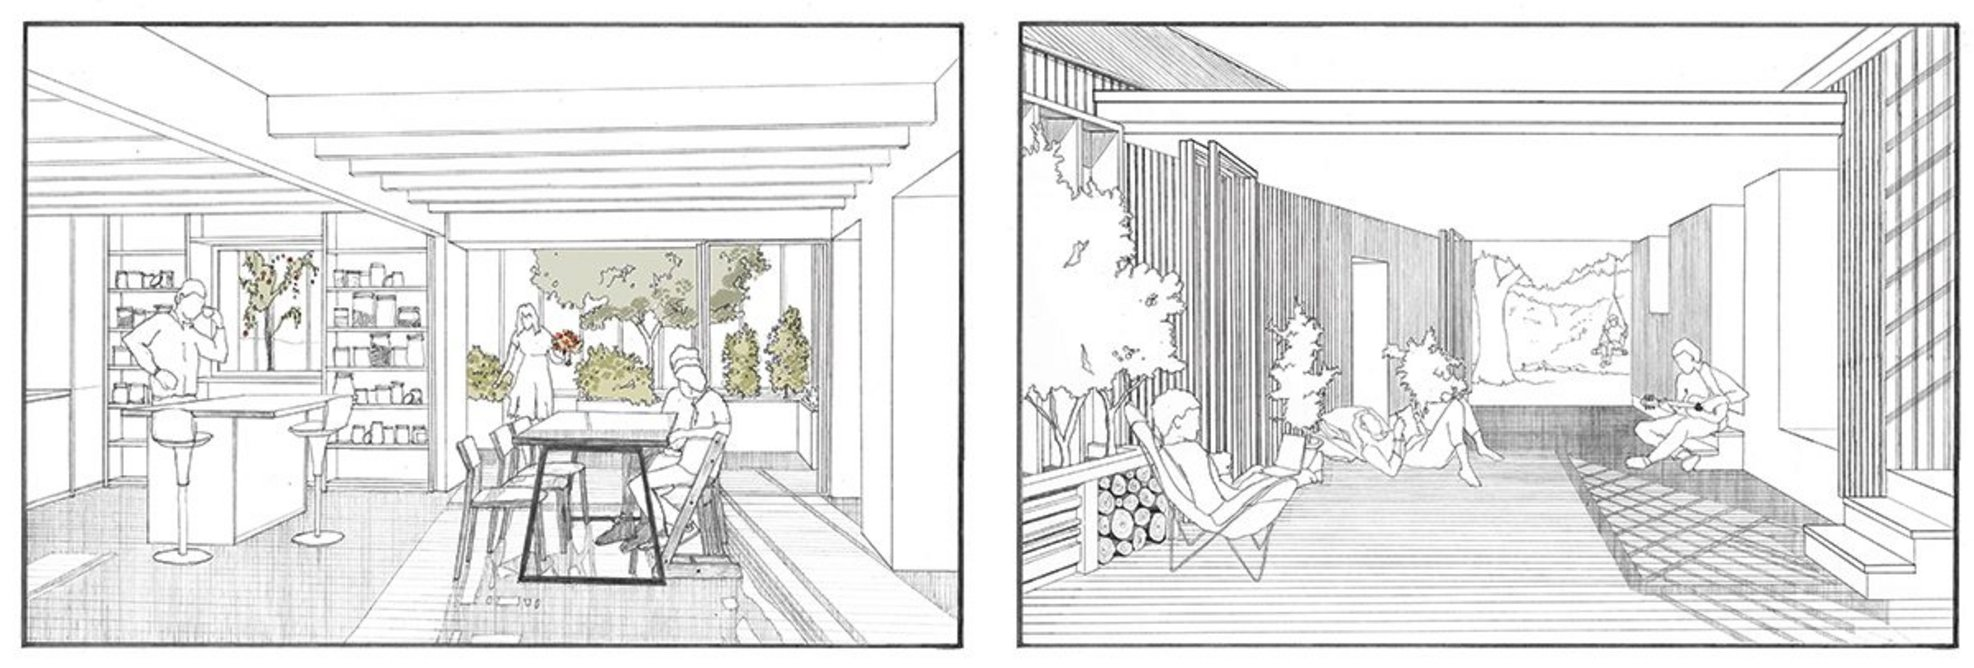 Exterior spaces provide sheltered space for relaxing and/ or working. The timber units are large and offer views to the landscape.